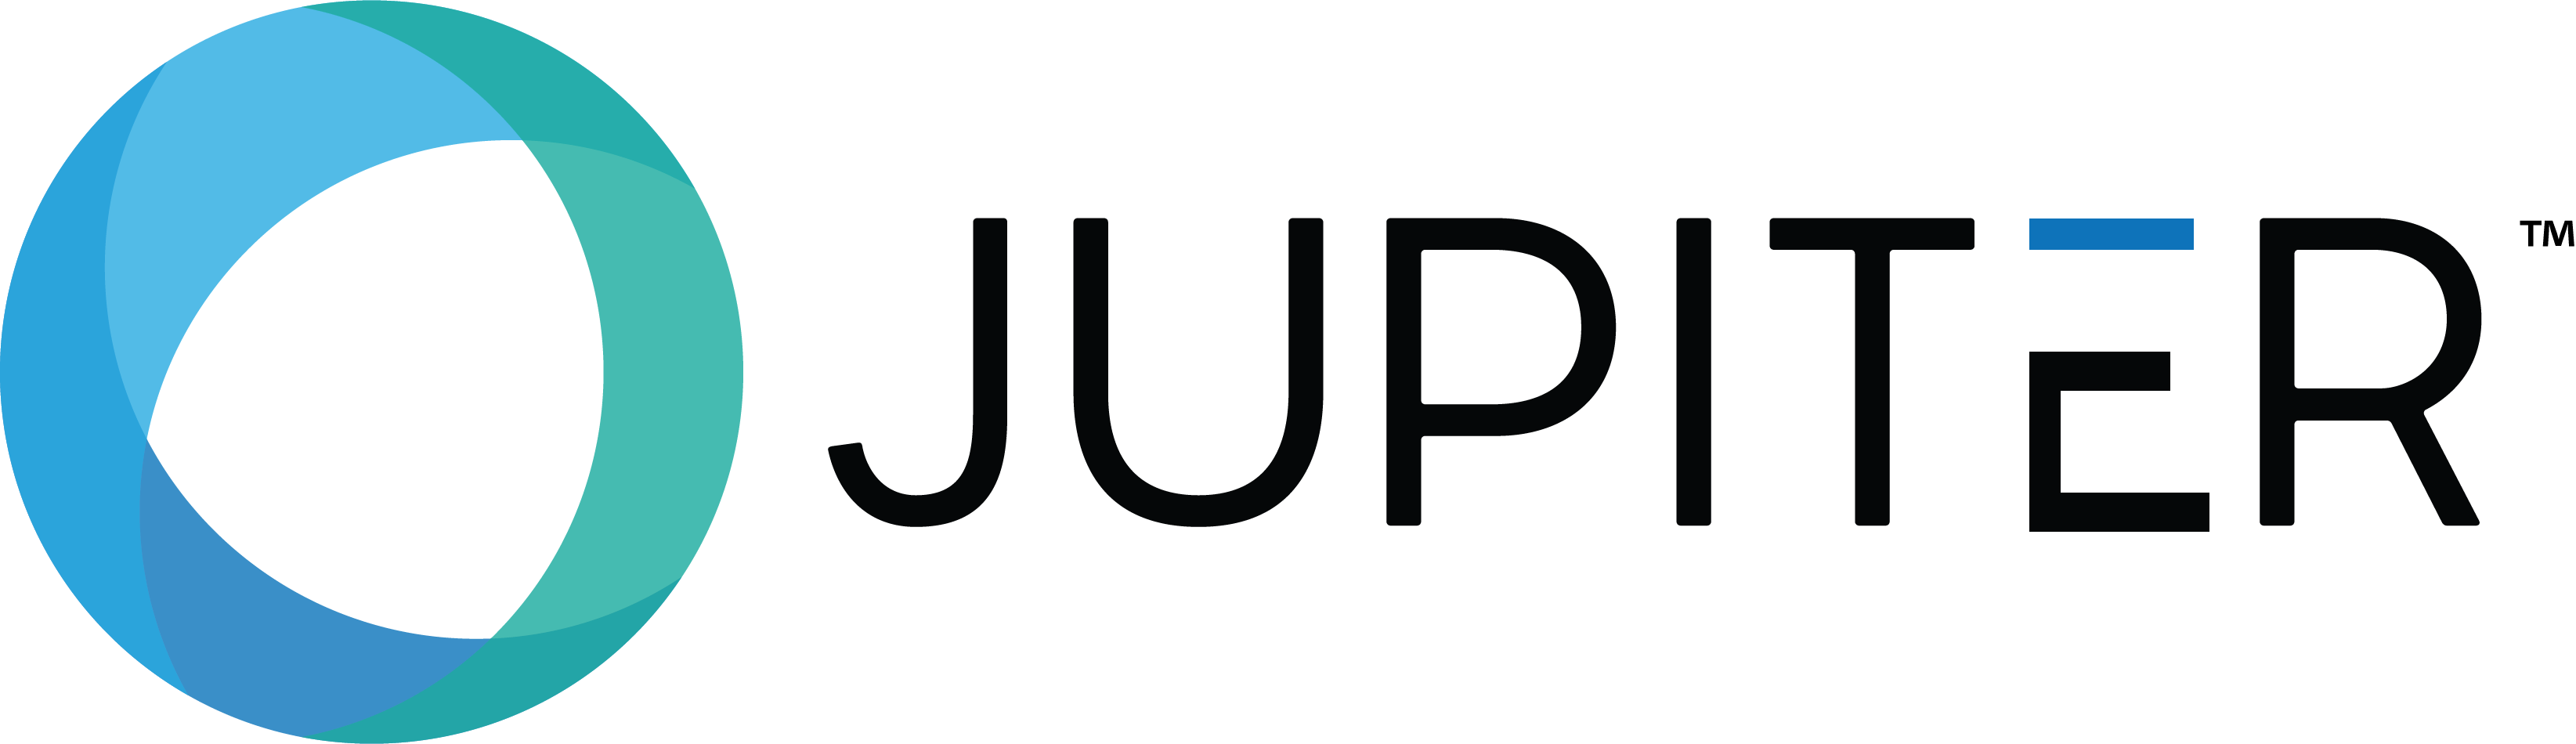 Jupiter Intelligence, Inc. logo